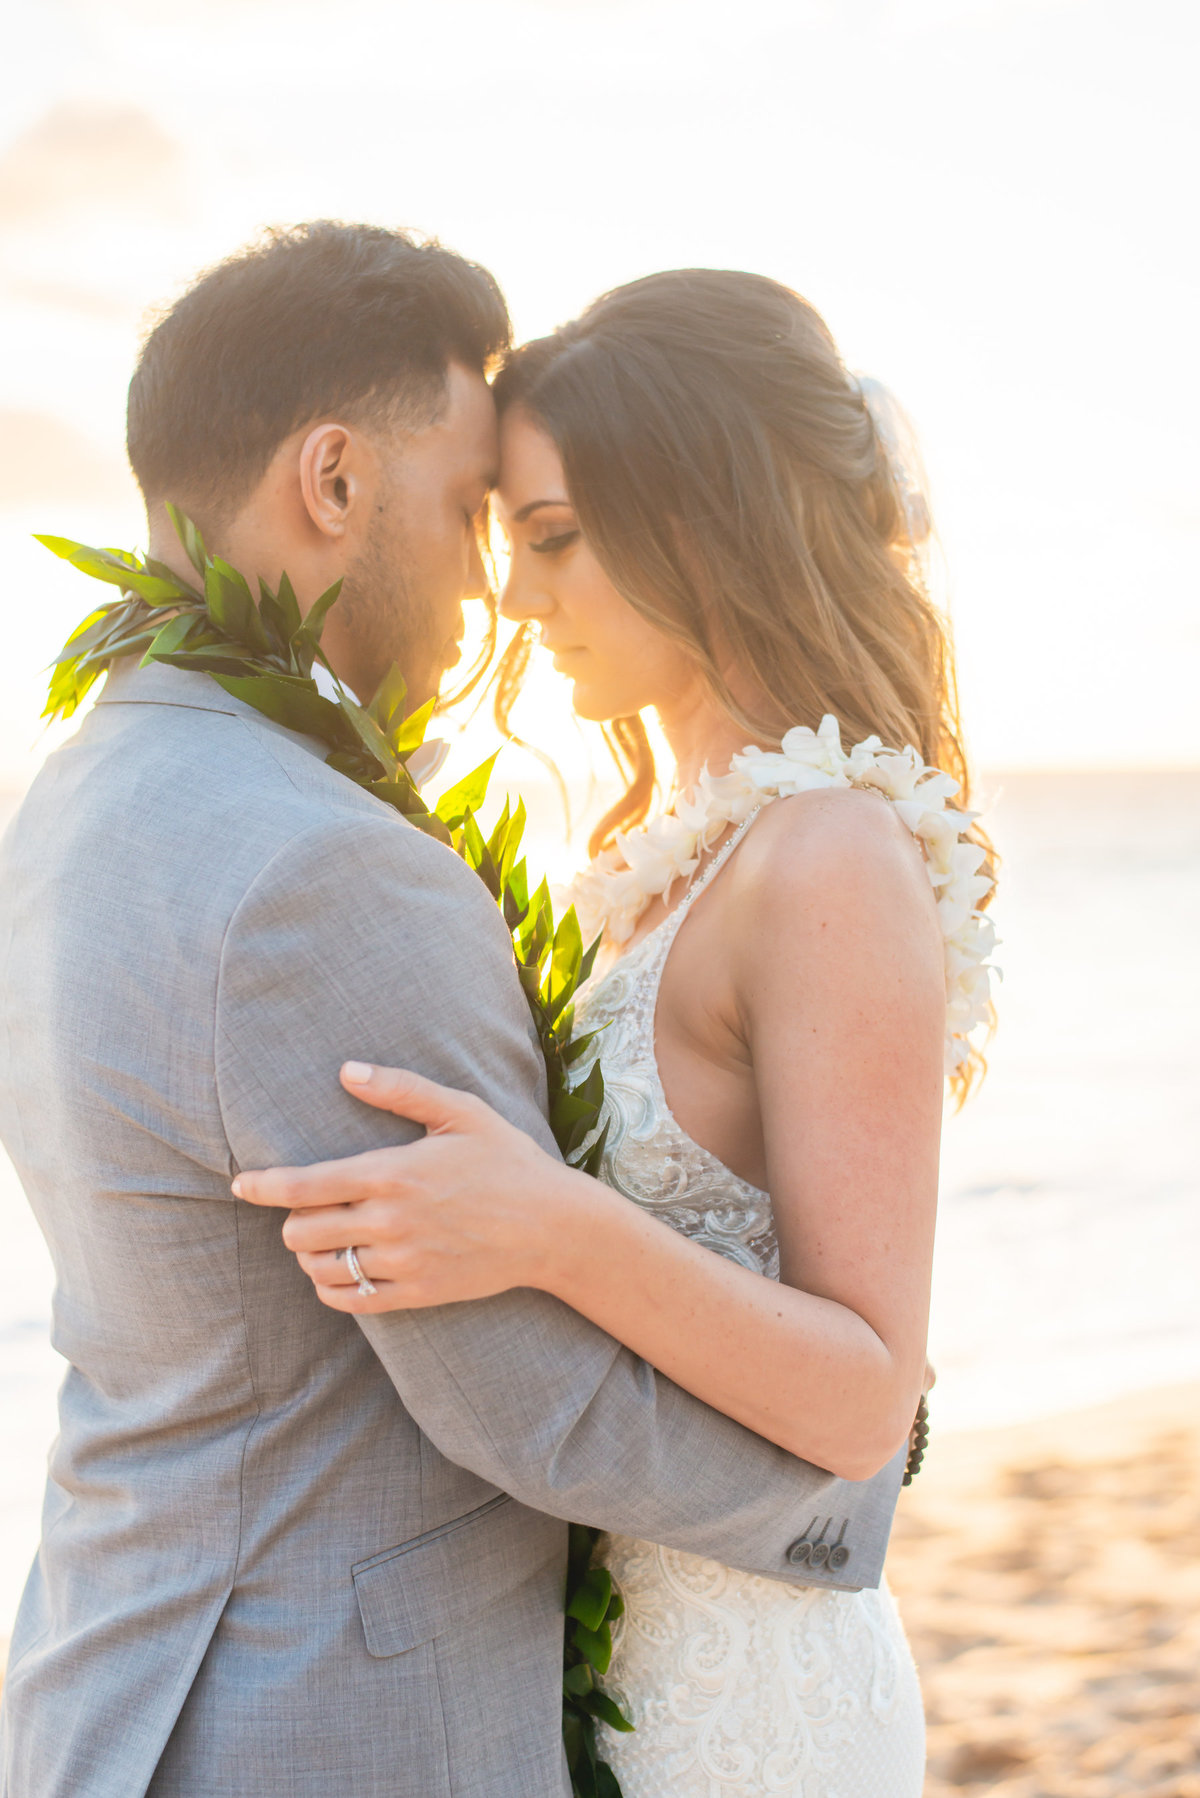 Maui wedding photography - hug